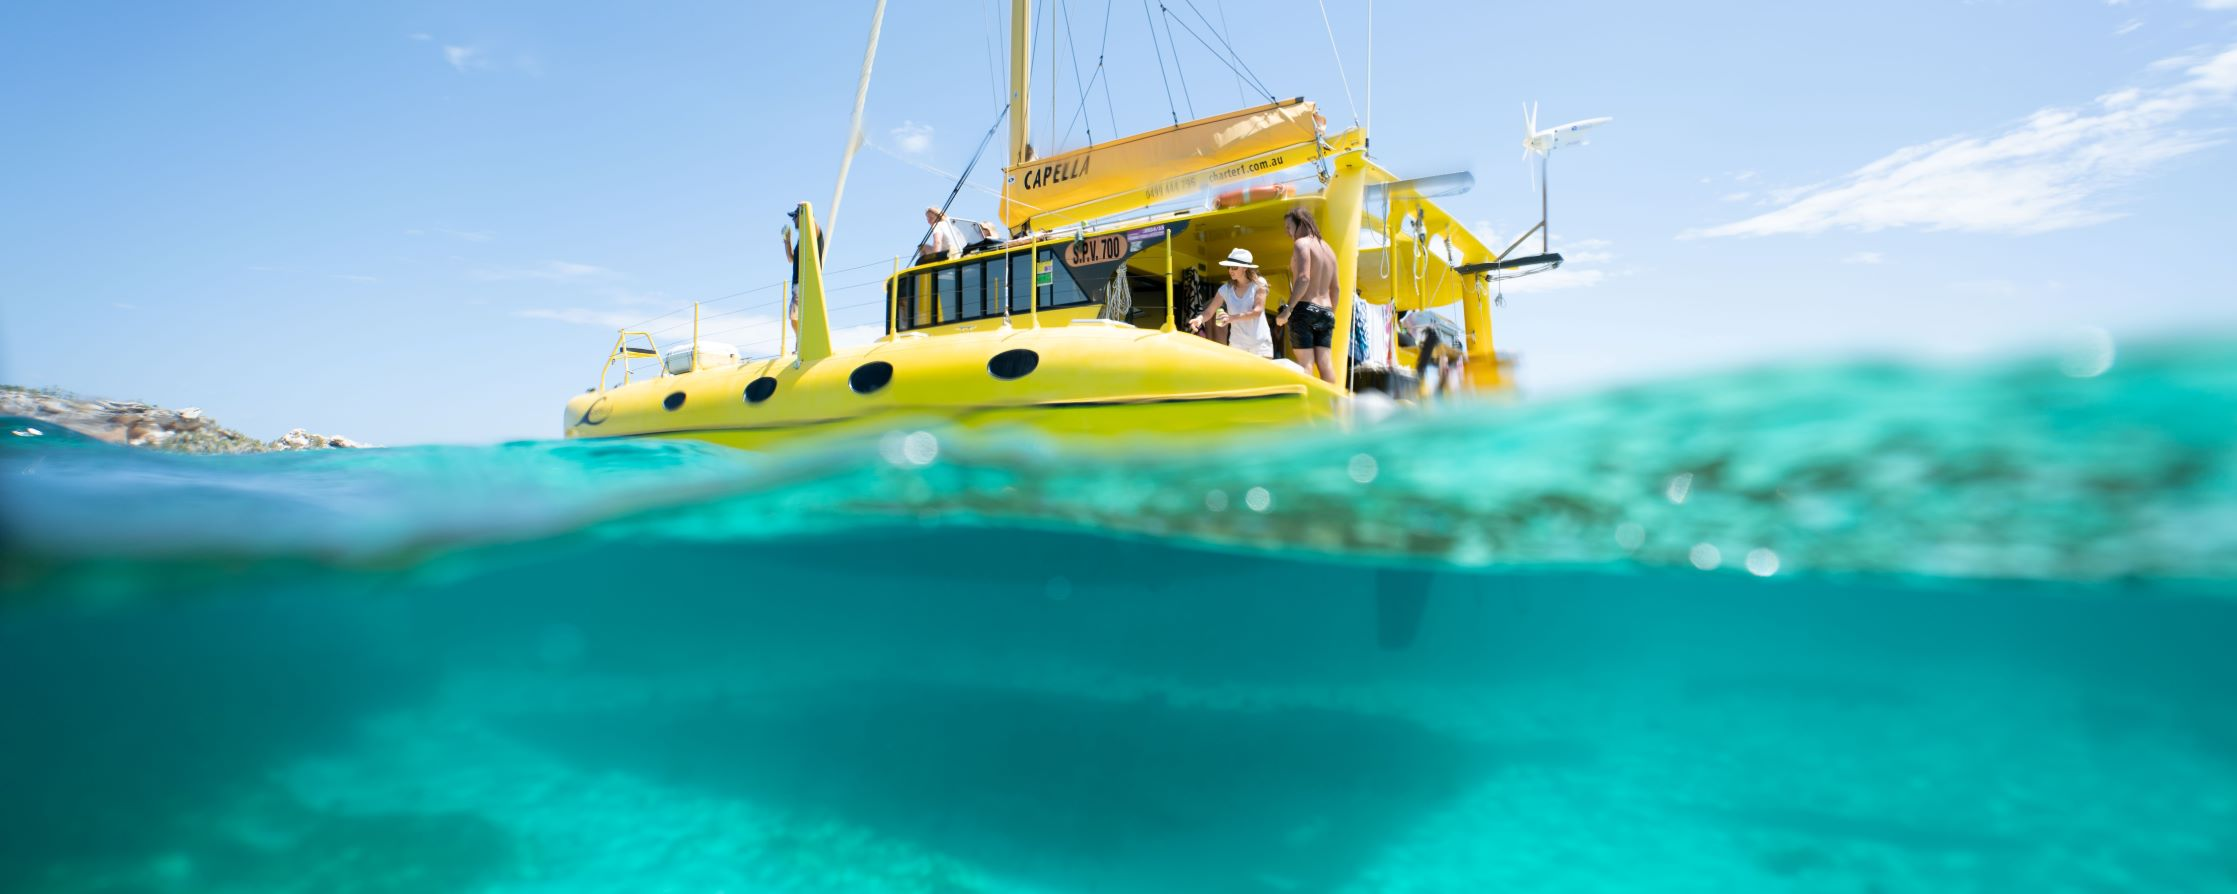 FULL DAY SAIL TO ROTTNEST Catamaran water